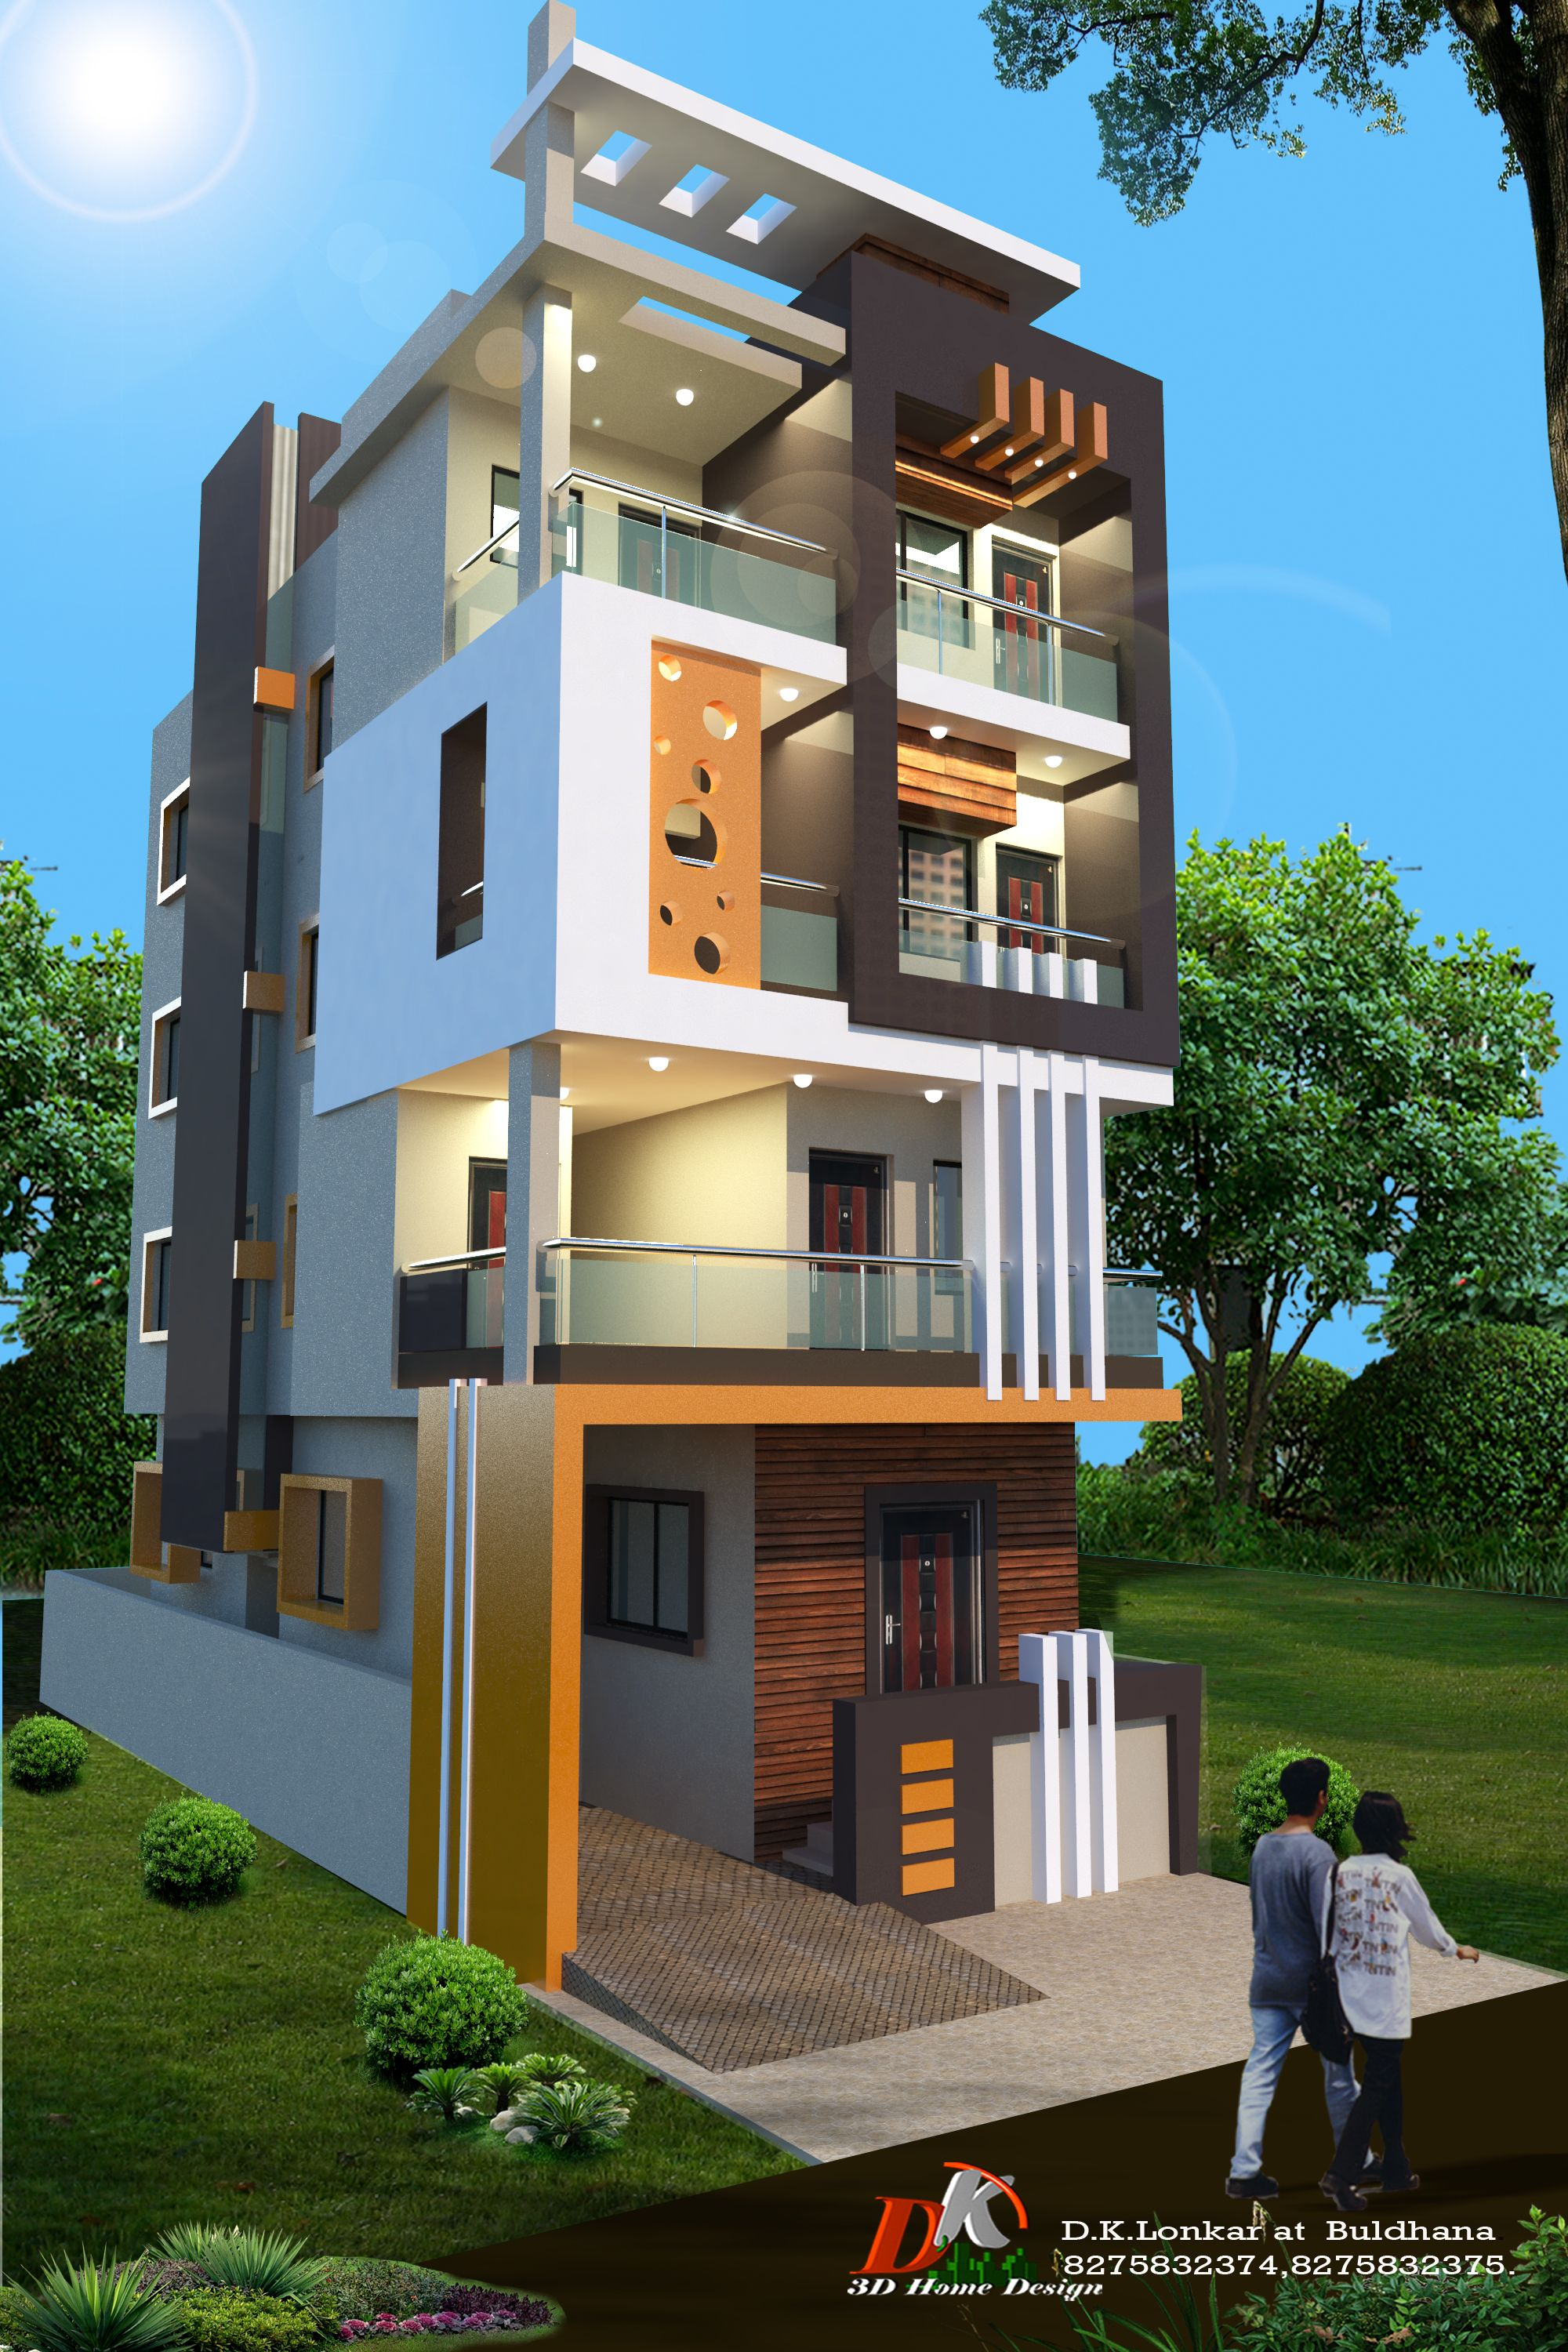 House Front Design House Design Front Elevation Designs: Small House Elevation Design, Duplex House Design, Small House Elevation